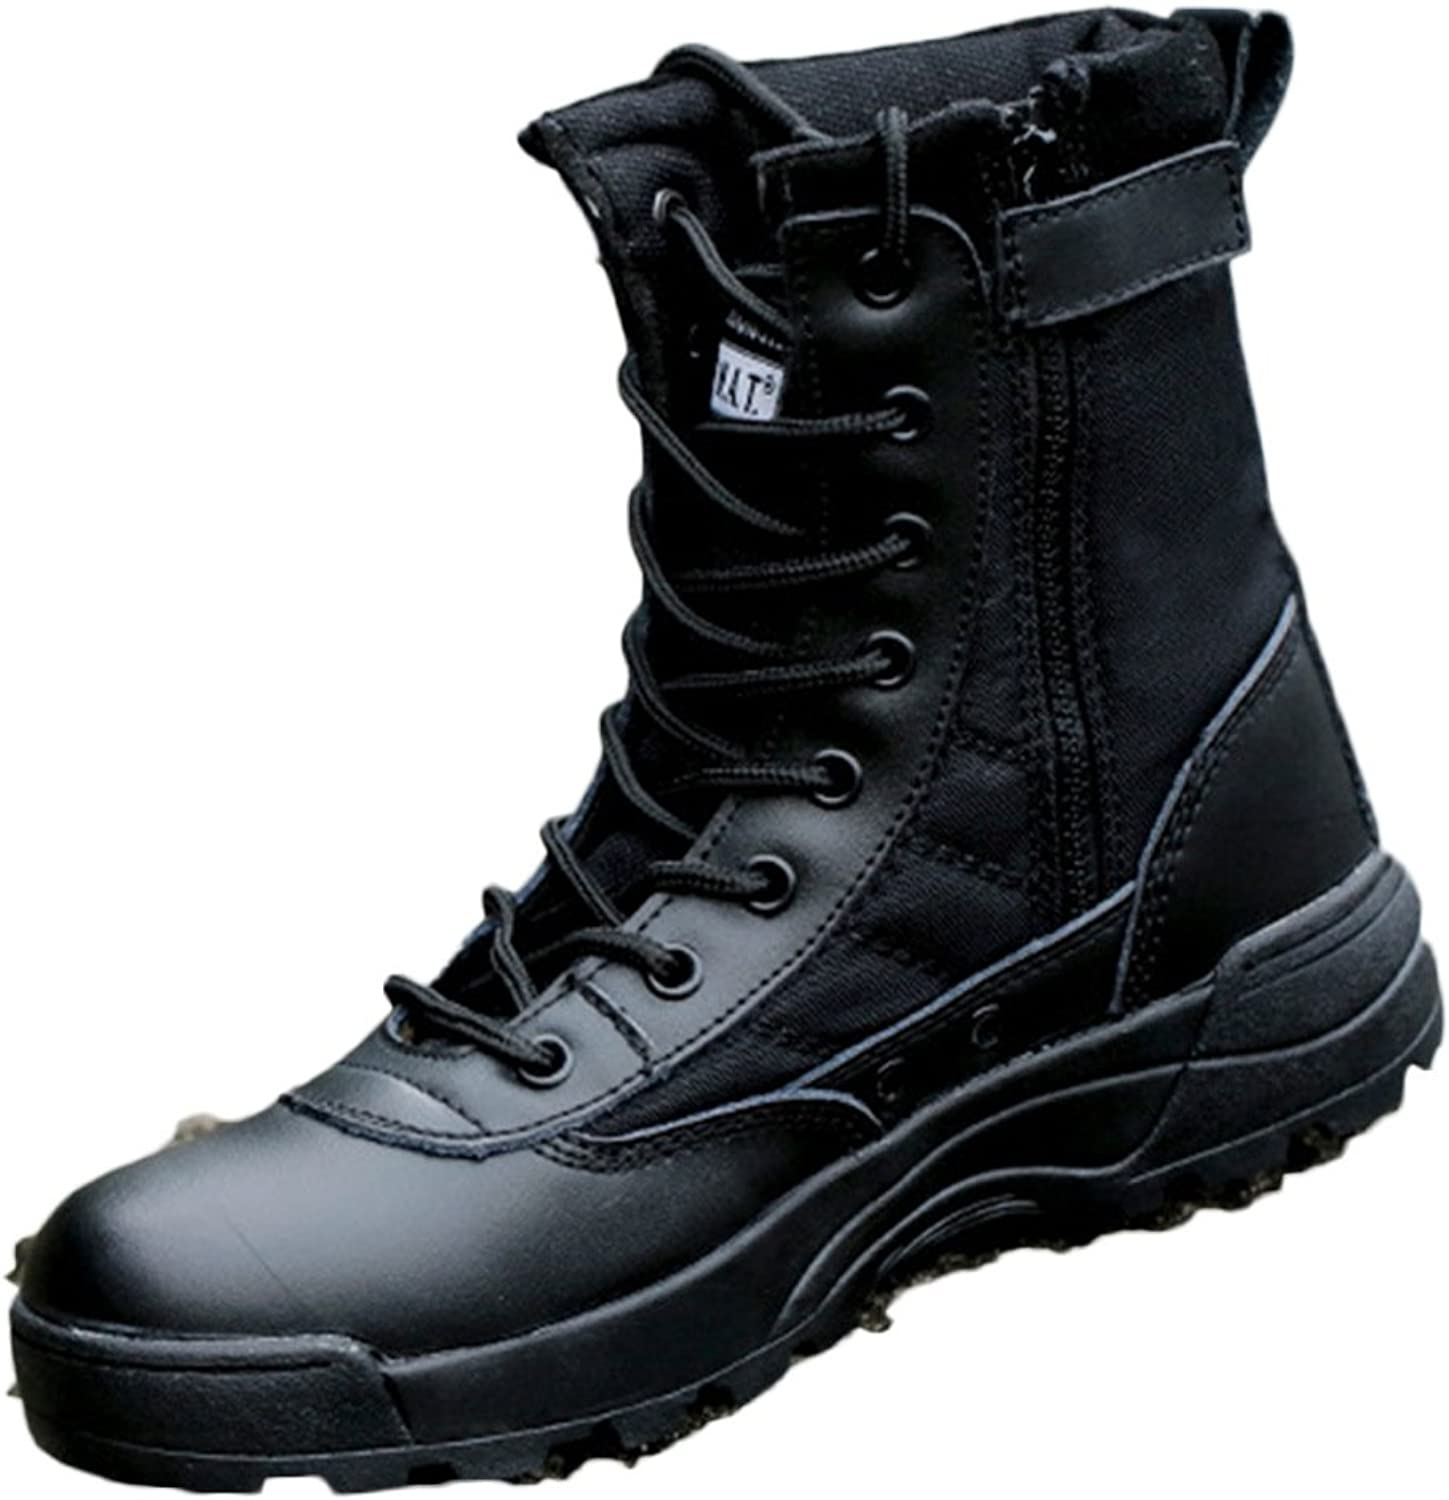 Hiking shoes Men Waterproof Black Lightweight Military Boots High-top Combat Boots Outdoor Tactical Boots